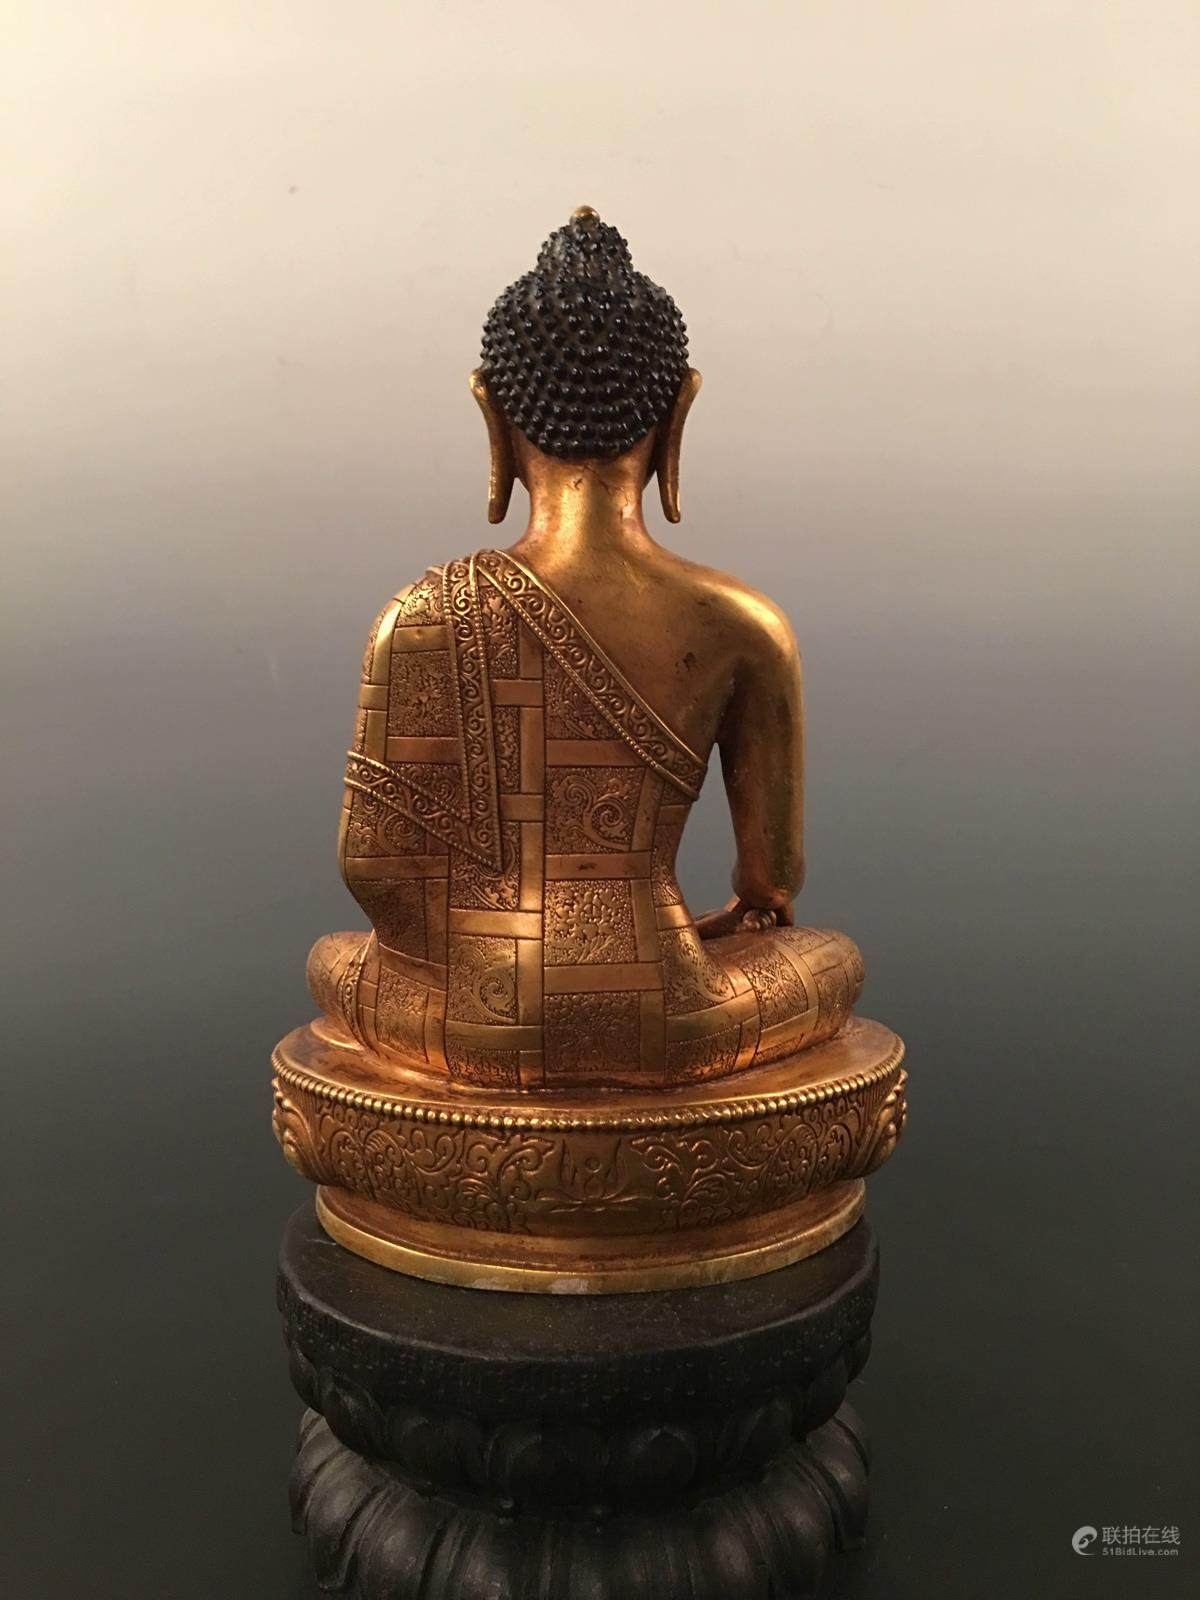 51BidLive-[Chinese Gilt Bronze Buddha Statue With Yong Le Mark]